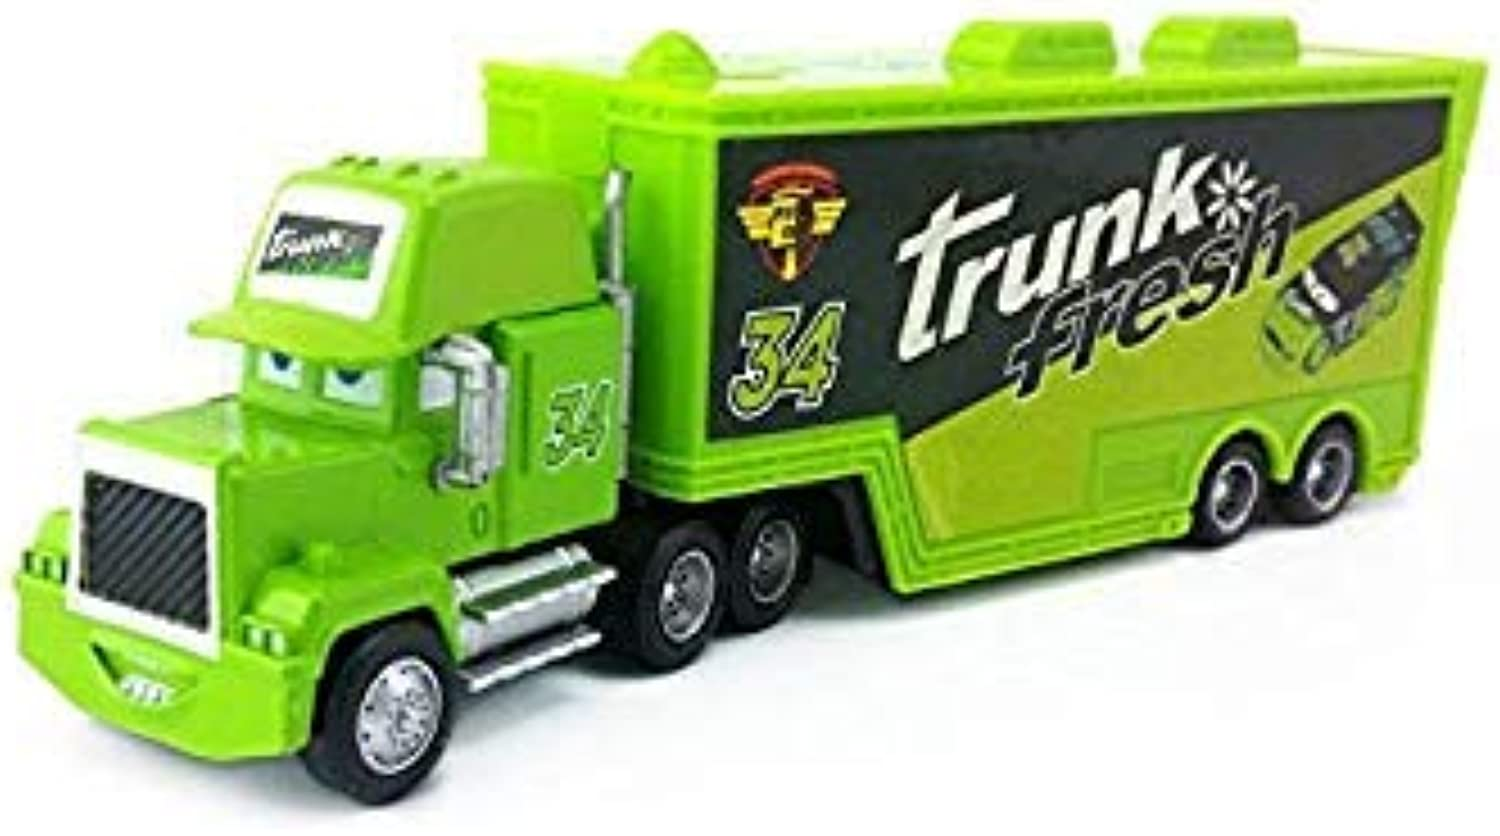 Pixar Cars 2 3 Mack Uncle King Francesco Fabulous Hudson No.4  No.123 Racer Truck 1 55 Toy Model Car Kids Chrismas Gift Mack No.34